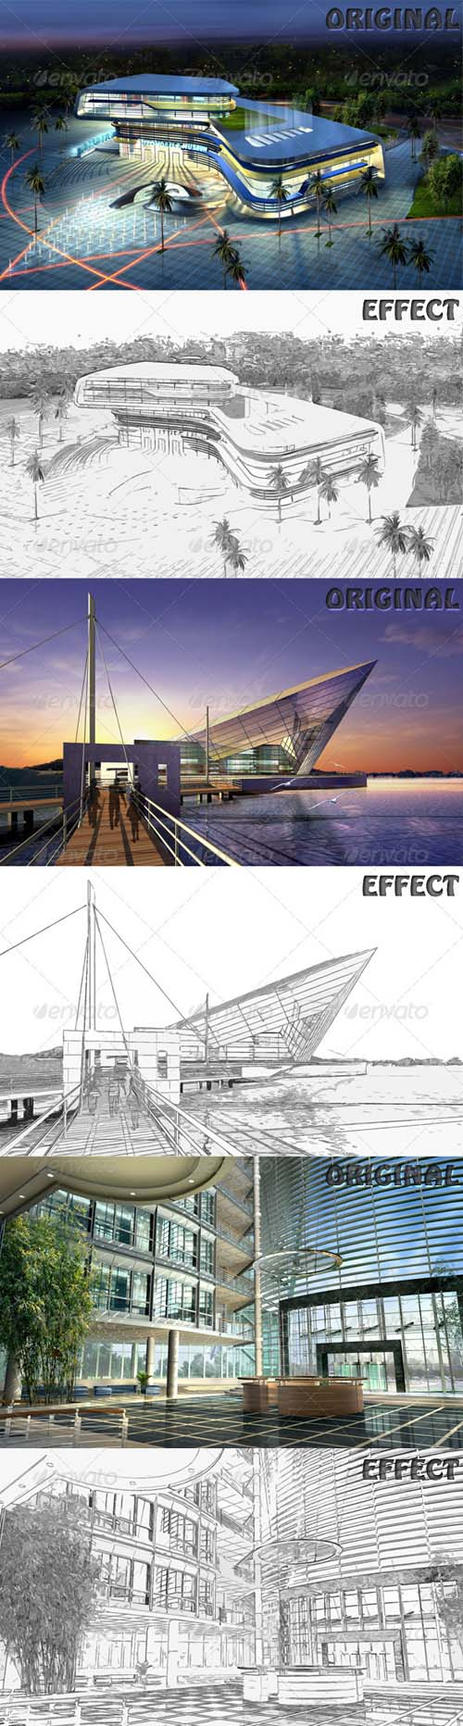 Photoshop Actions Sketch Effect by xgfxws